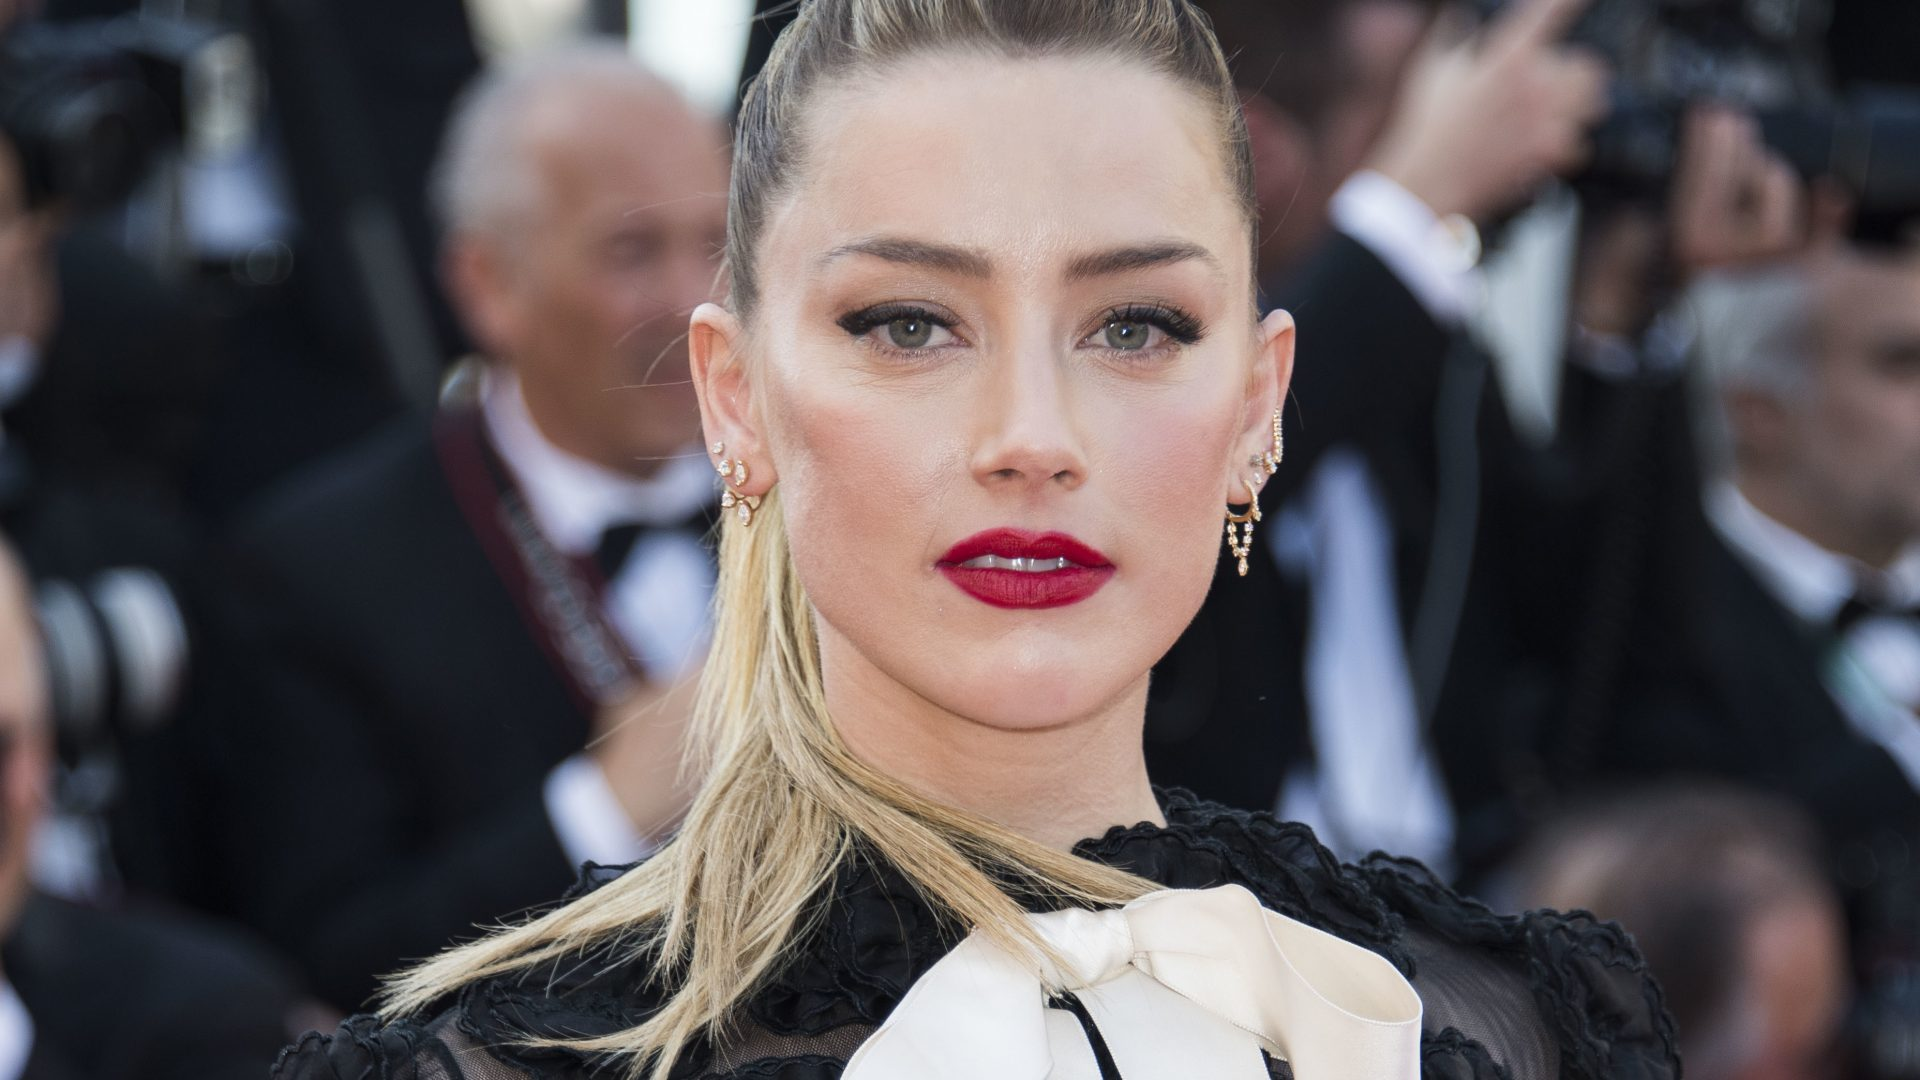 Amber Heard: after many challenges, she's back on the Aquaman set